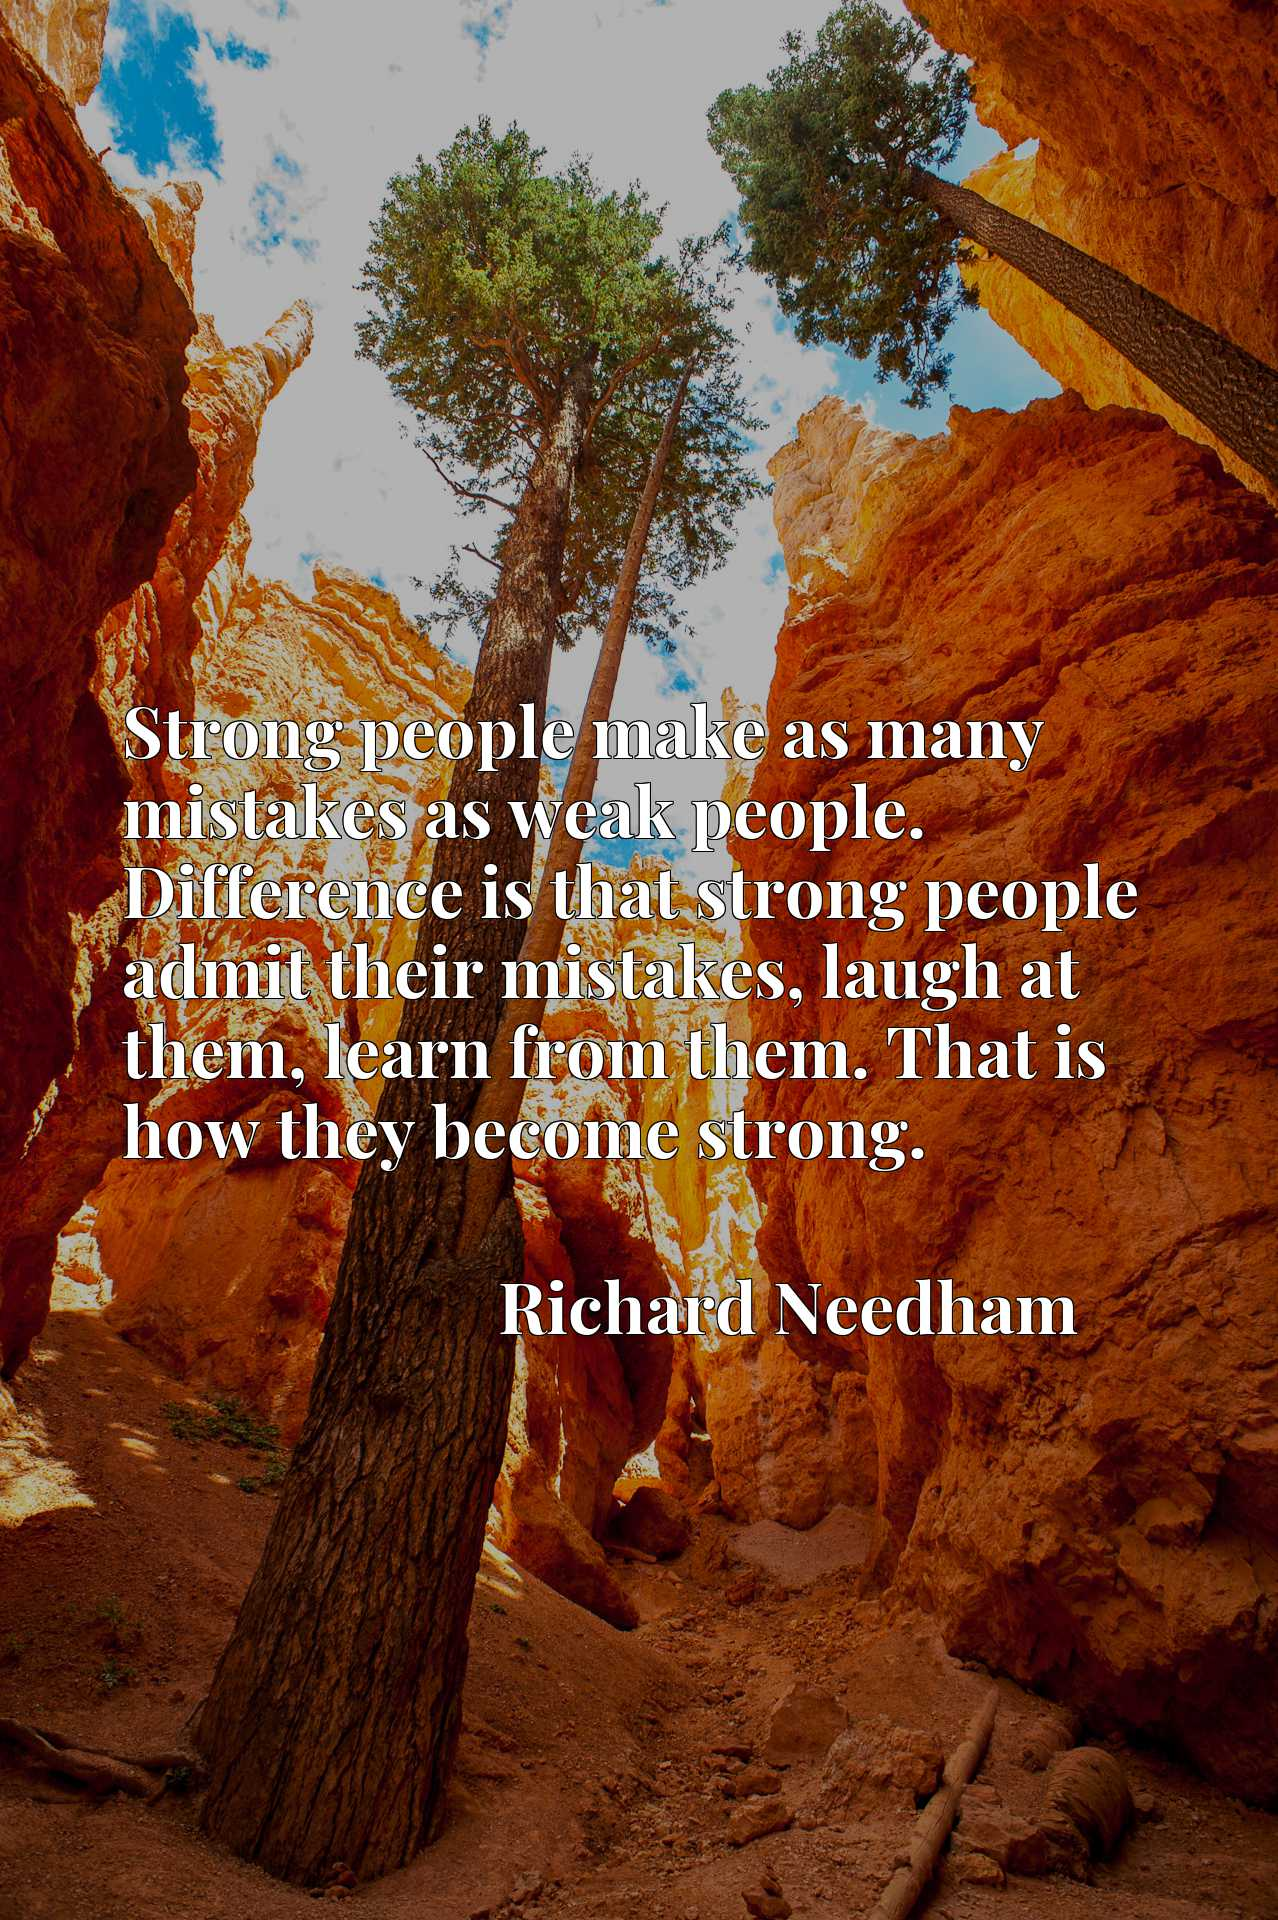 Strong people make as many mistakes as weak people. Difference is that strong people admit their mistakes, laugh at them, learn from them. That is how they become strong.